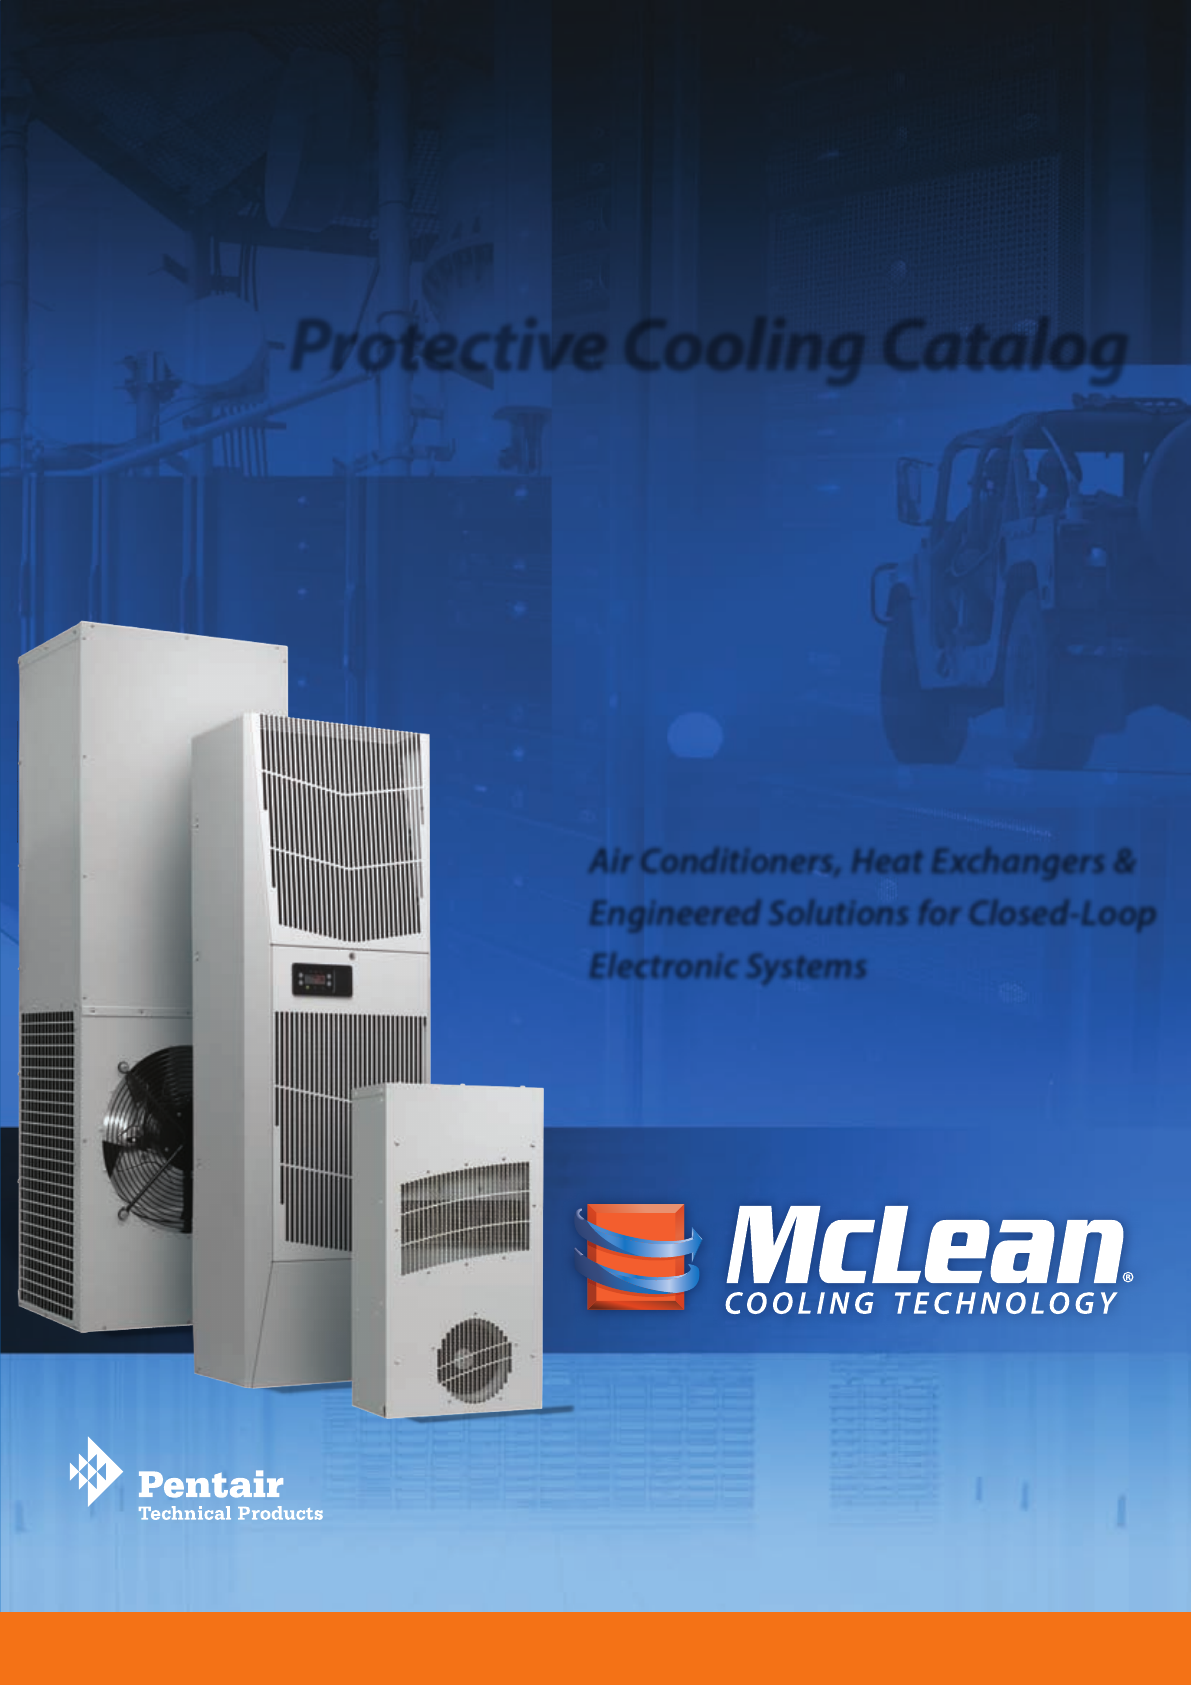 Catalog Protective Cooling Mclean Cooling Technology 2011 Brochure